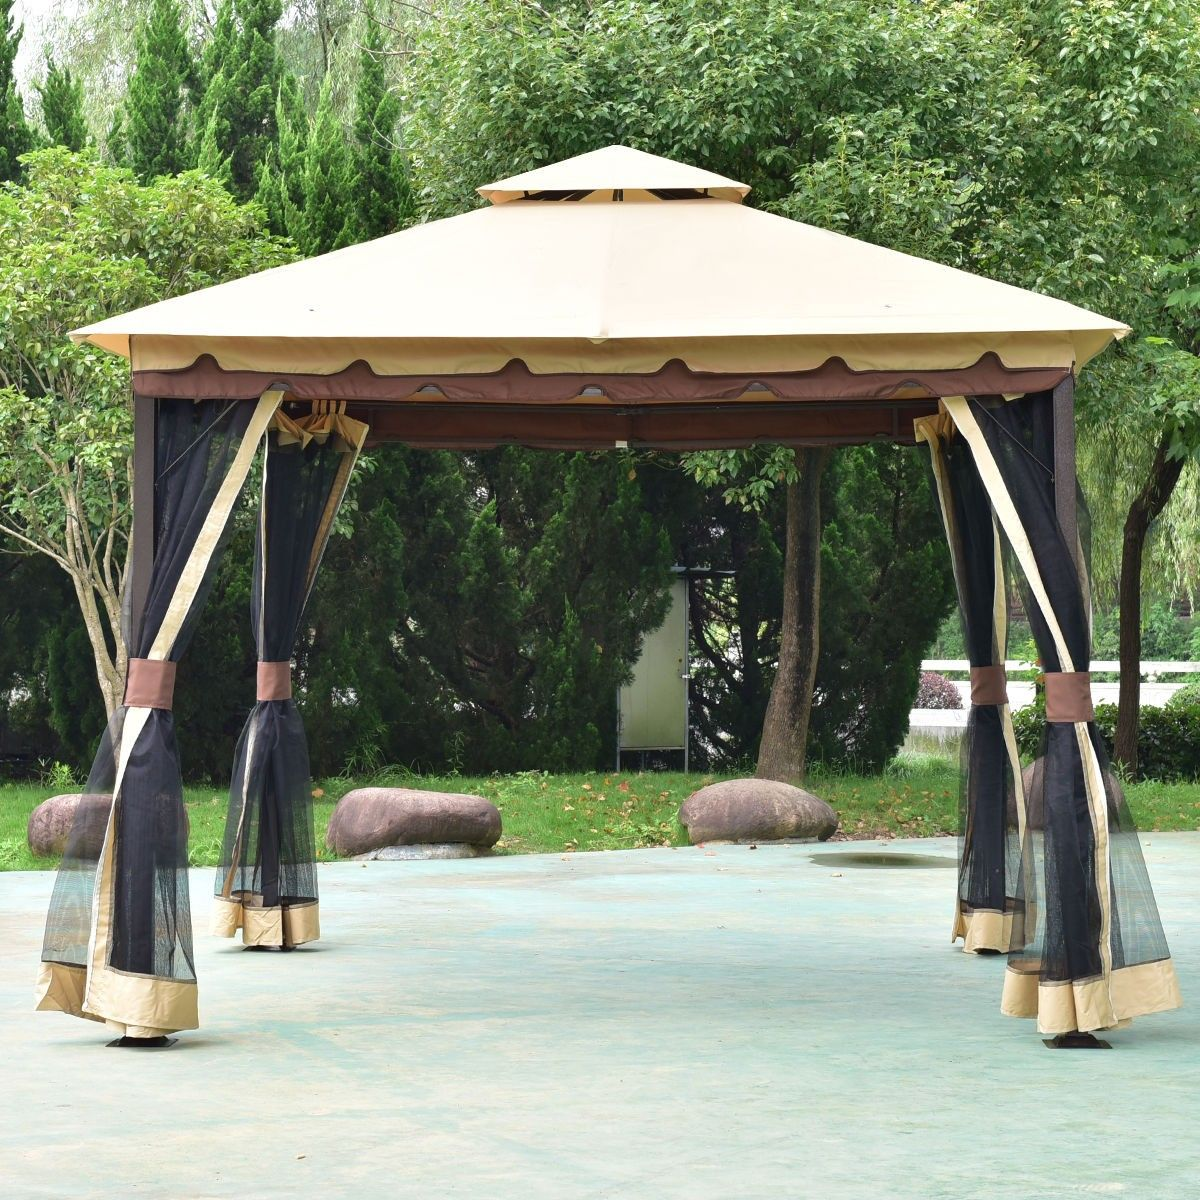 2 Tier 10 X 10 Patio Shelter Awning Steel Gazebo Canopy Steel Gazebo Gazebo Canopy Gazebo